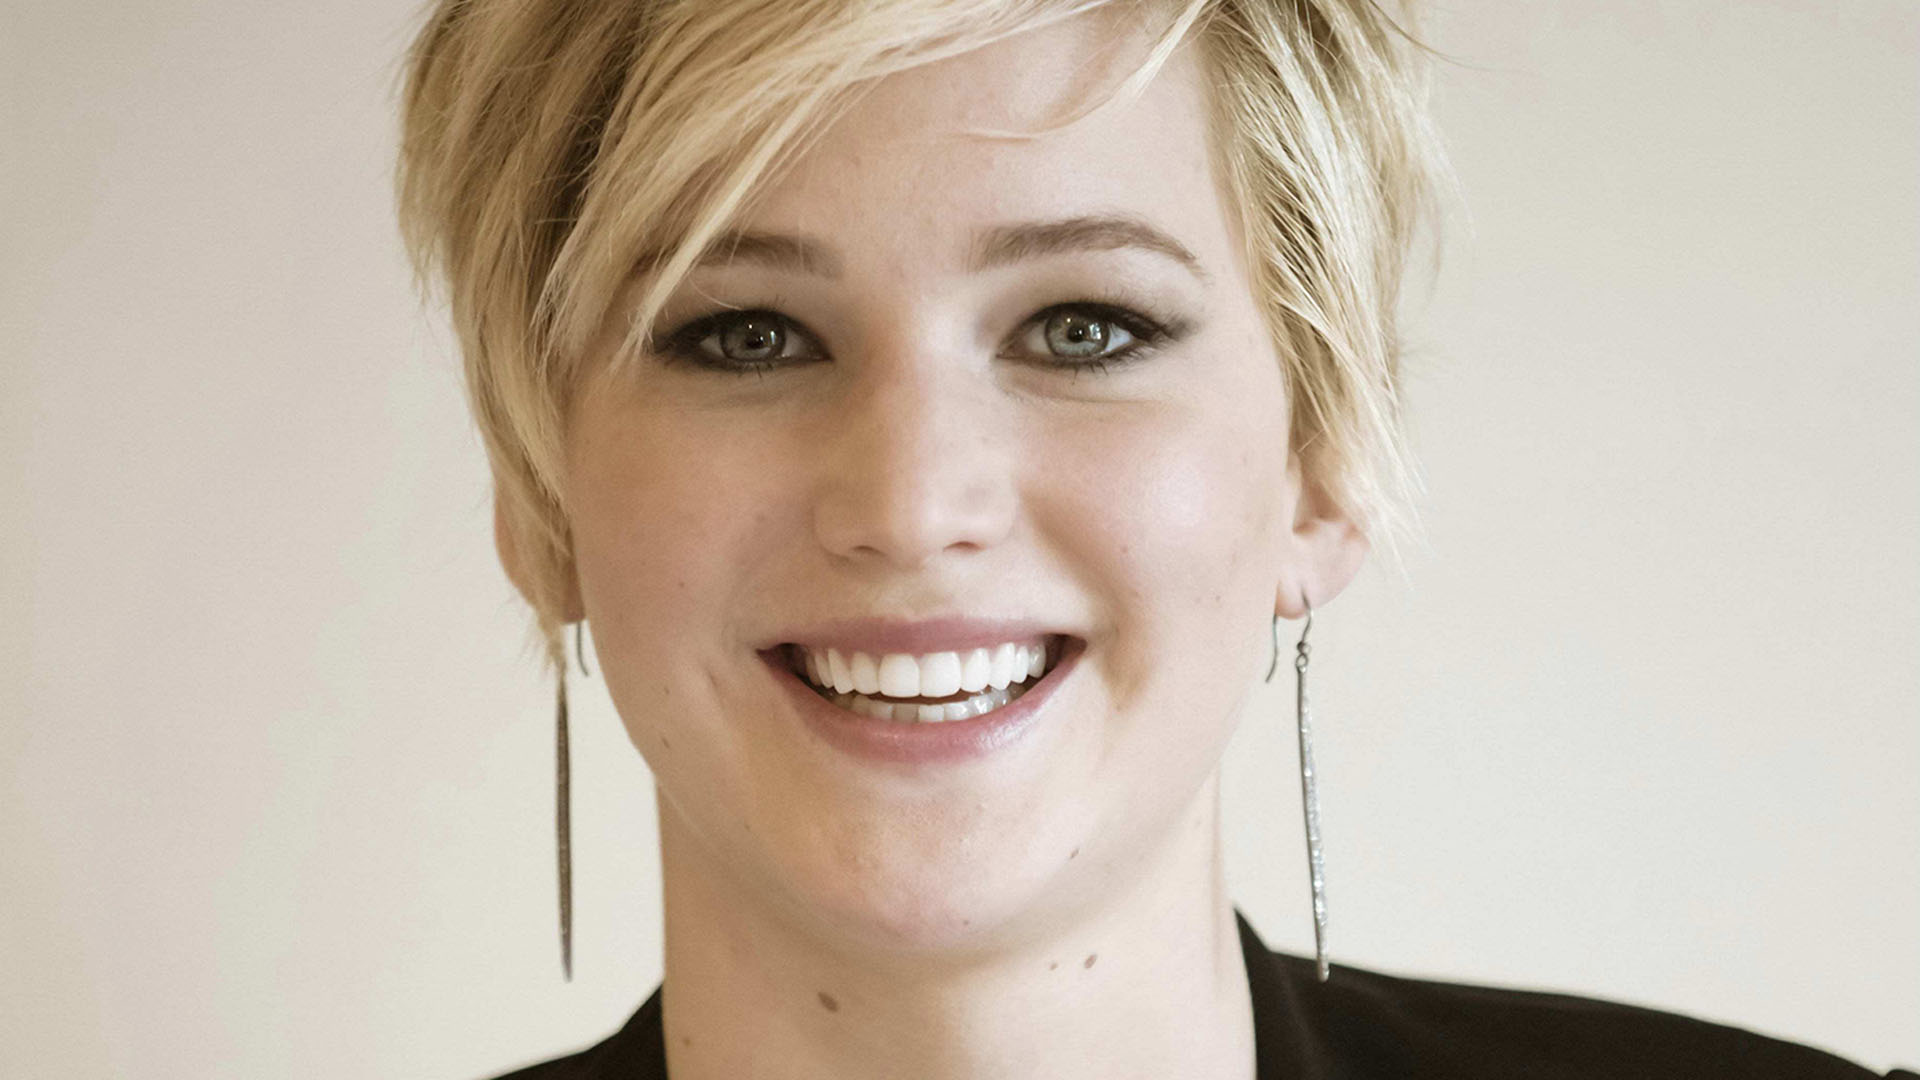 jennifer lawrence smile wallpaper background wallpapers